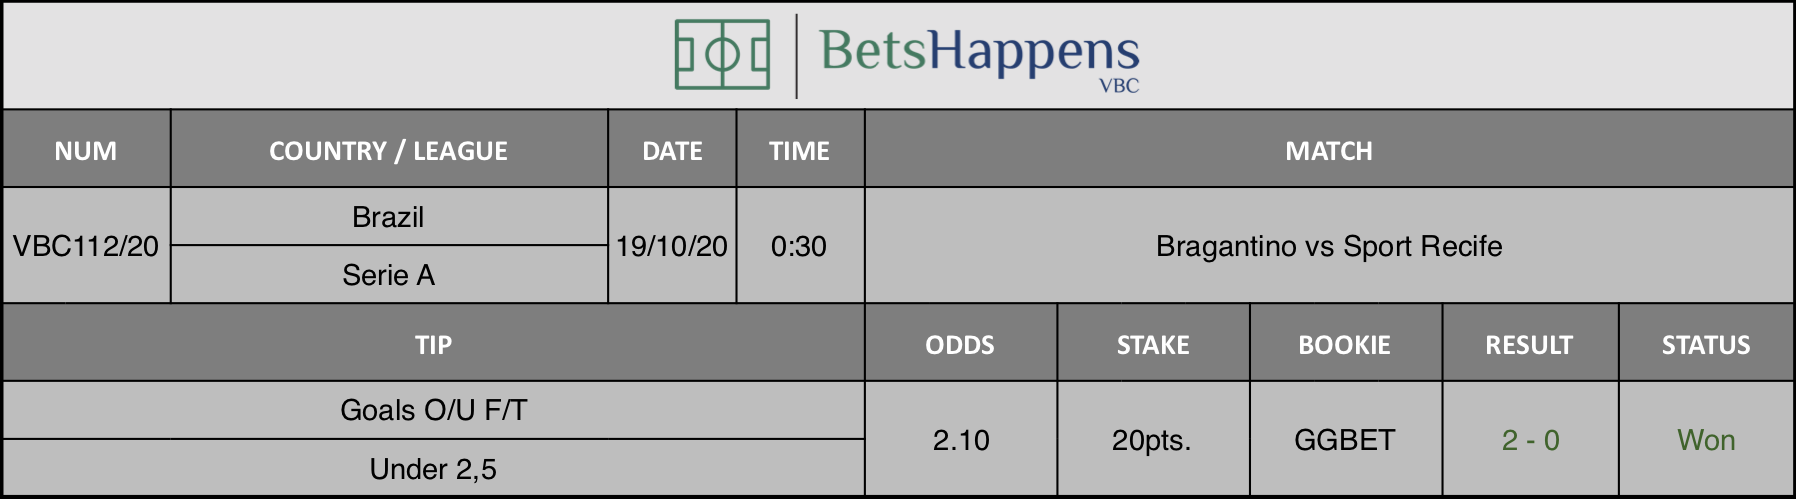 Results of our advice for the Bragantino vs Sport Recife match in which Goals O / U F / T Under 2,5 is recommended.